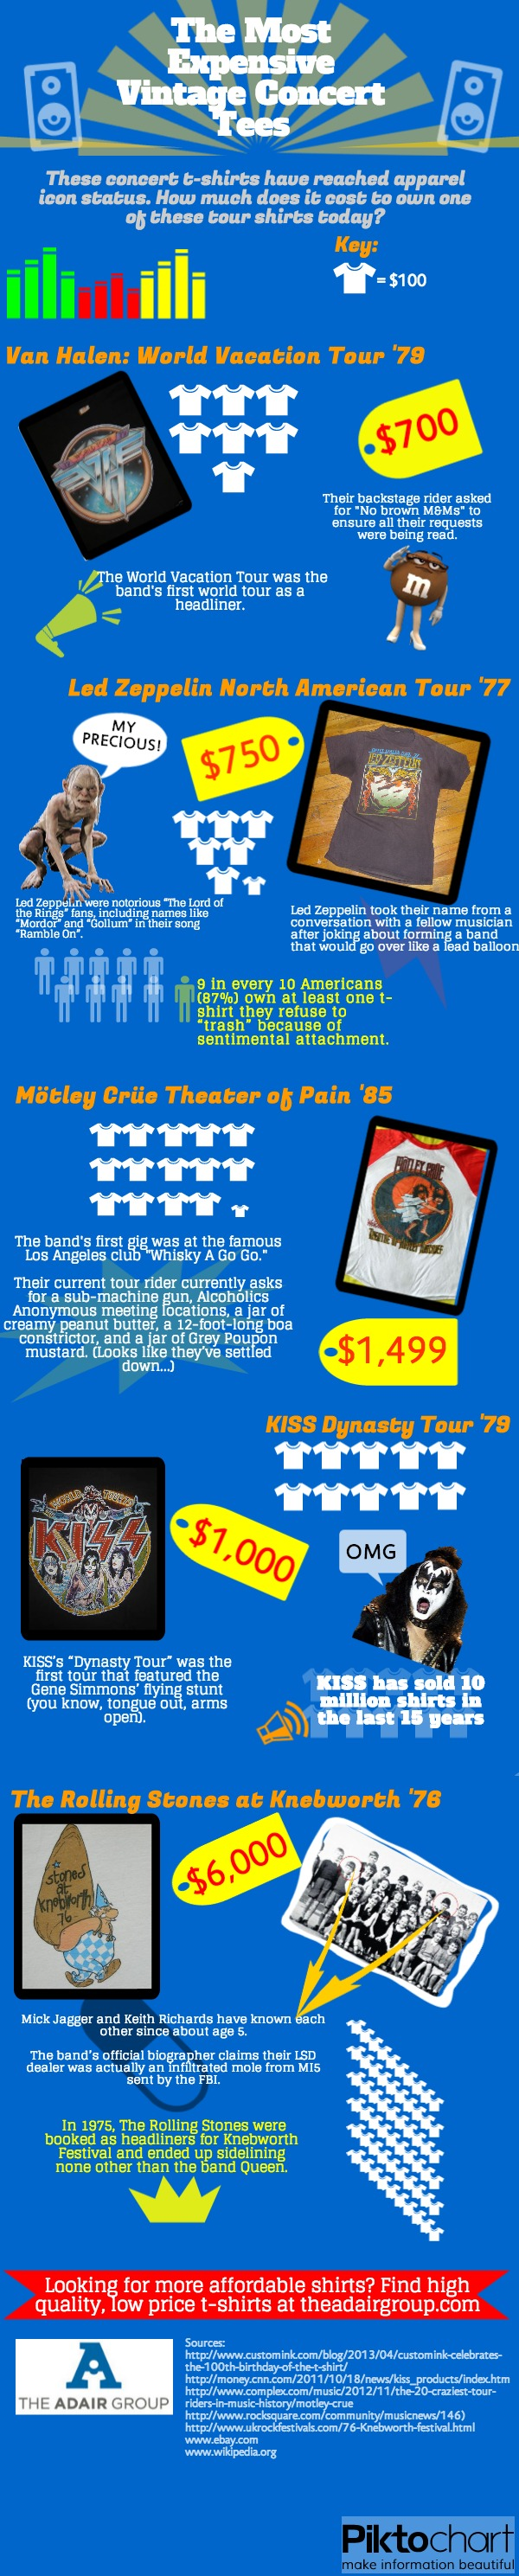 the-most-expensive-vintage-concert-t-shirts_52163dbf89c5f